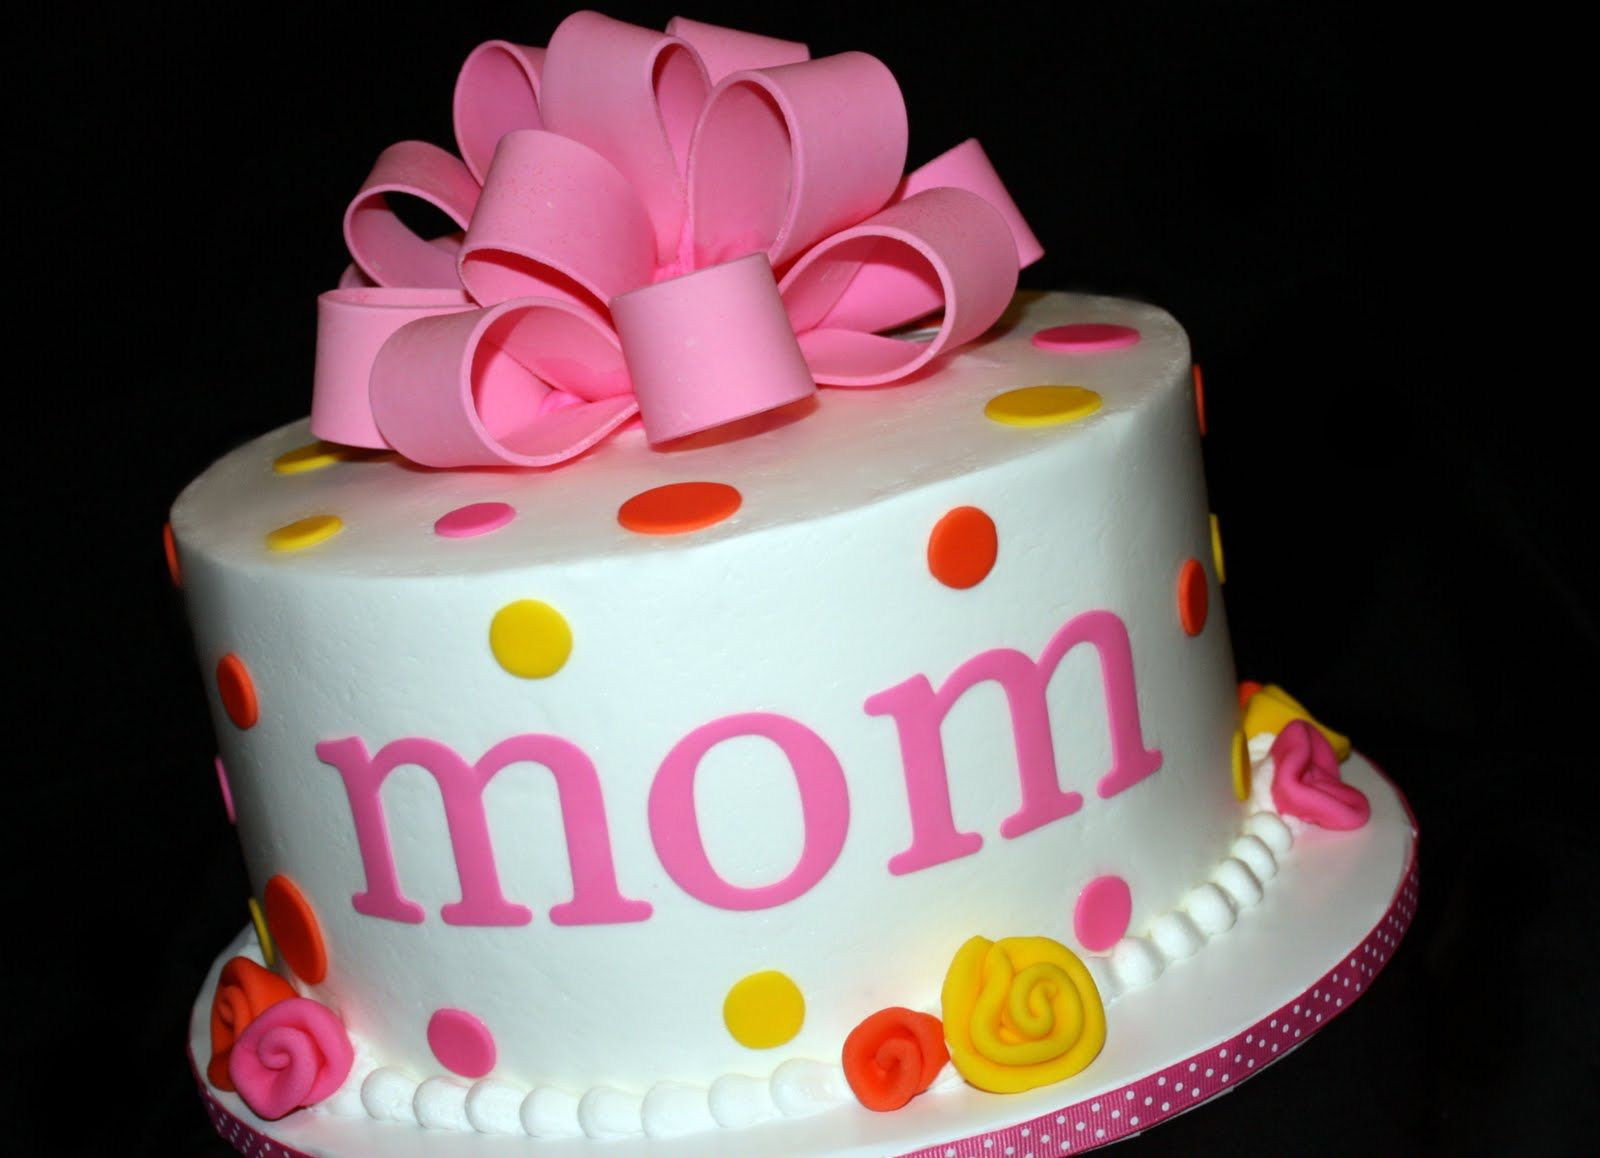 Birthday Cake Design For A Mother : fun cakes Mom Birthday Cake fun cakes Pinterest ...